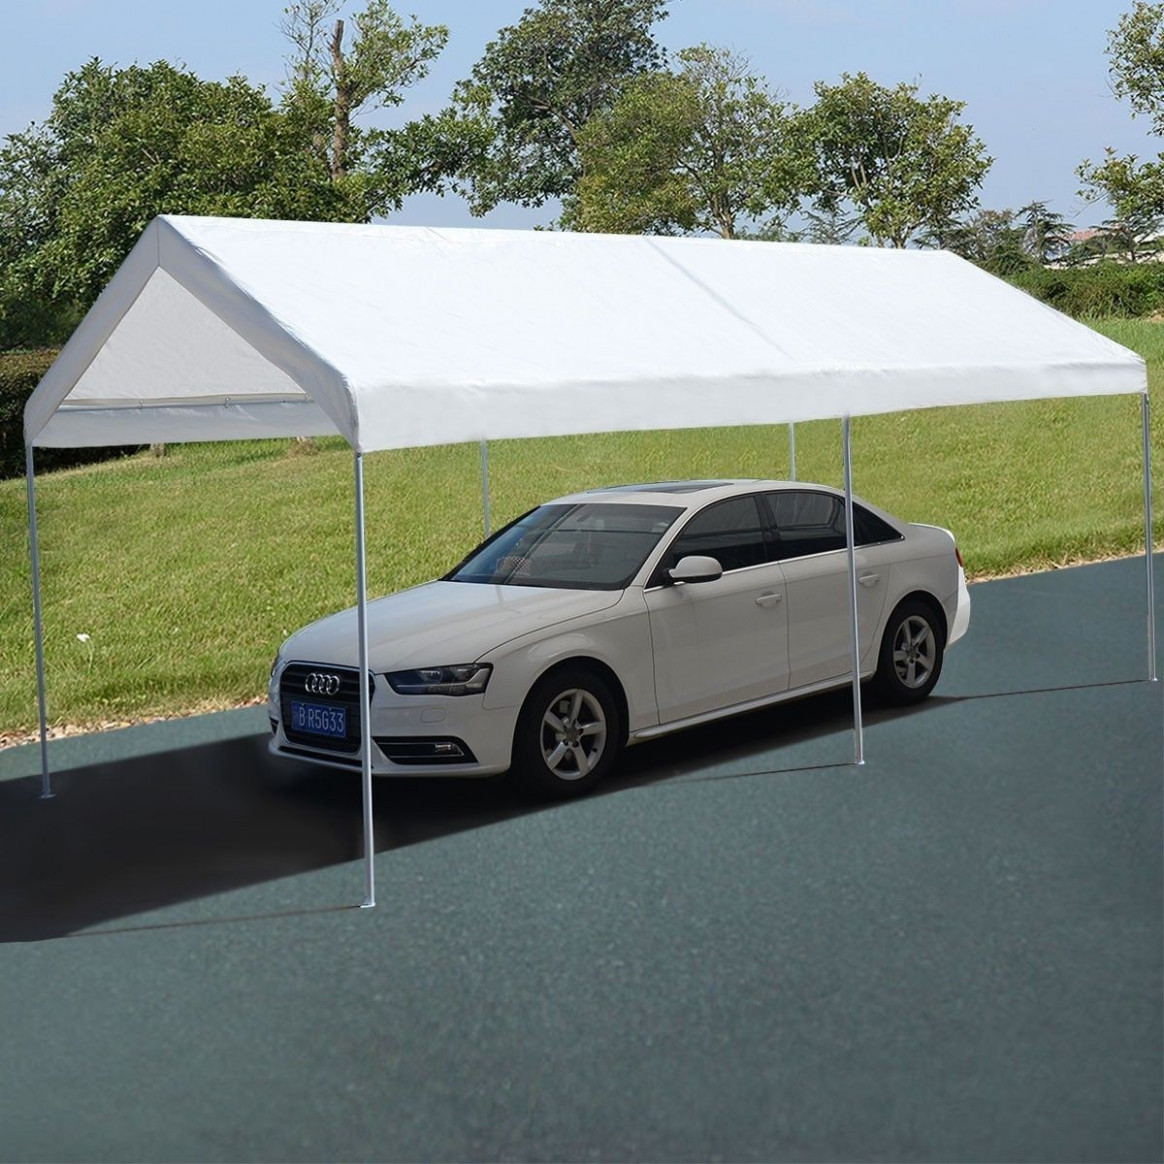 Apontus 12 X 12 Steel Frame Canopy Shelter Portable Car Carport Garage Cover Party Tent Carport Canopy And Frame